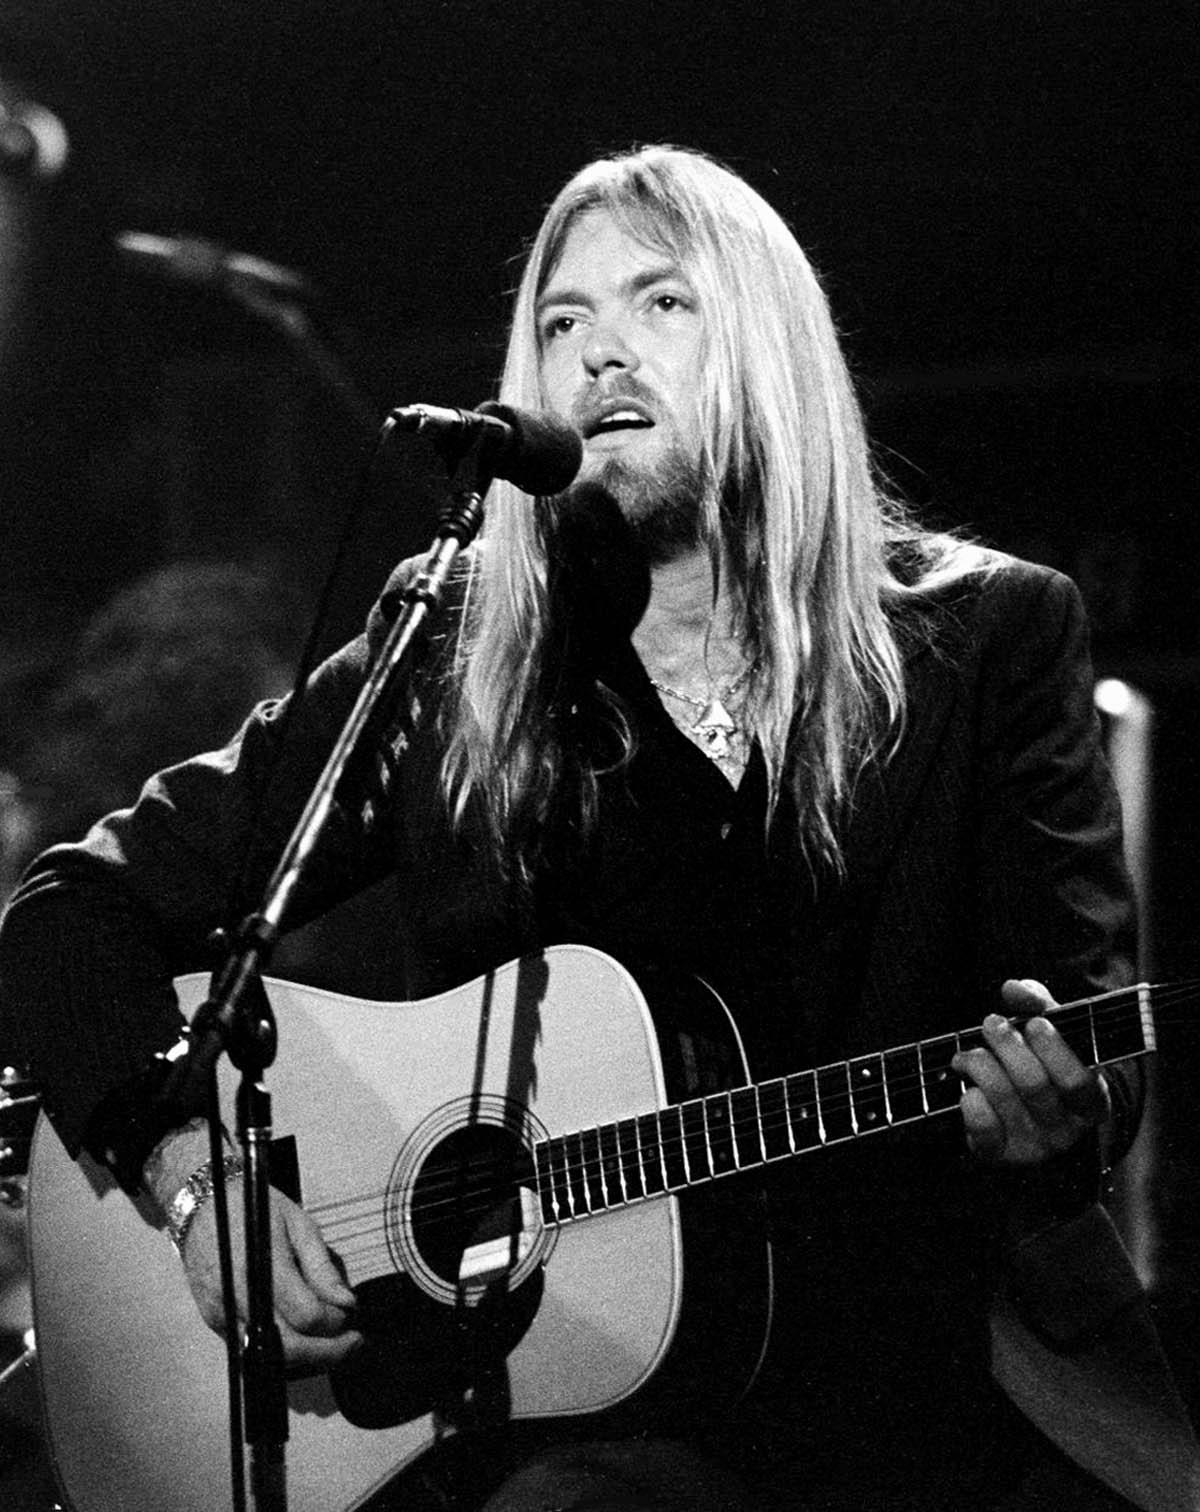 Rock royalty pay tribute to legendary Gregg Allman